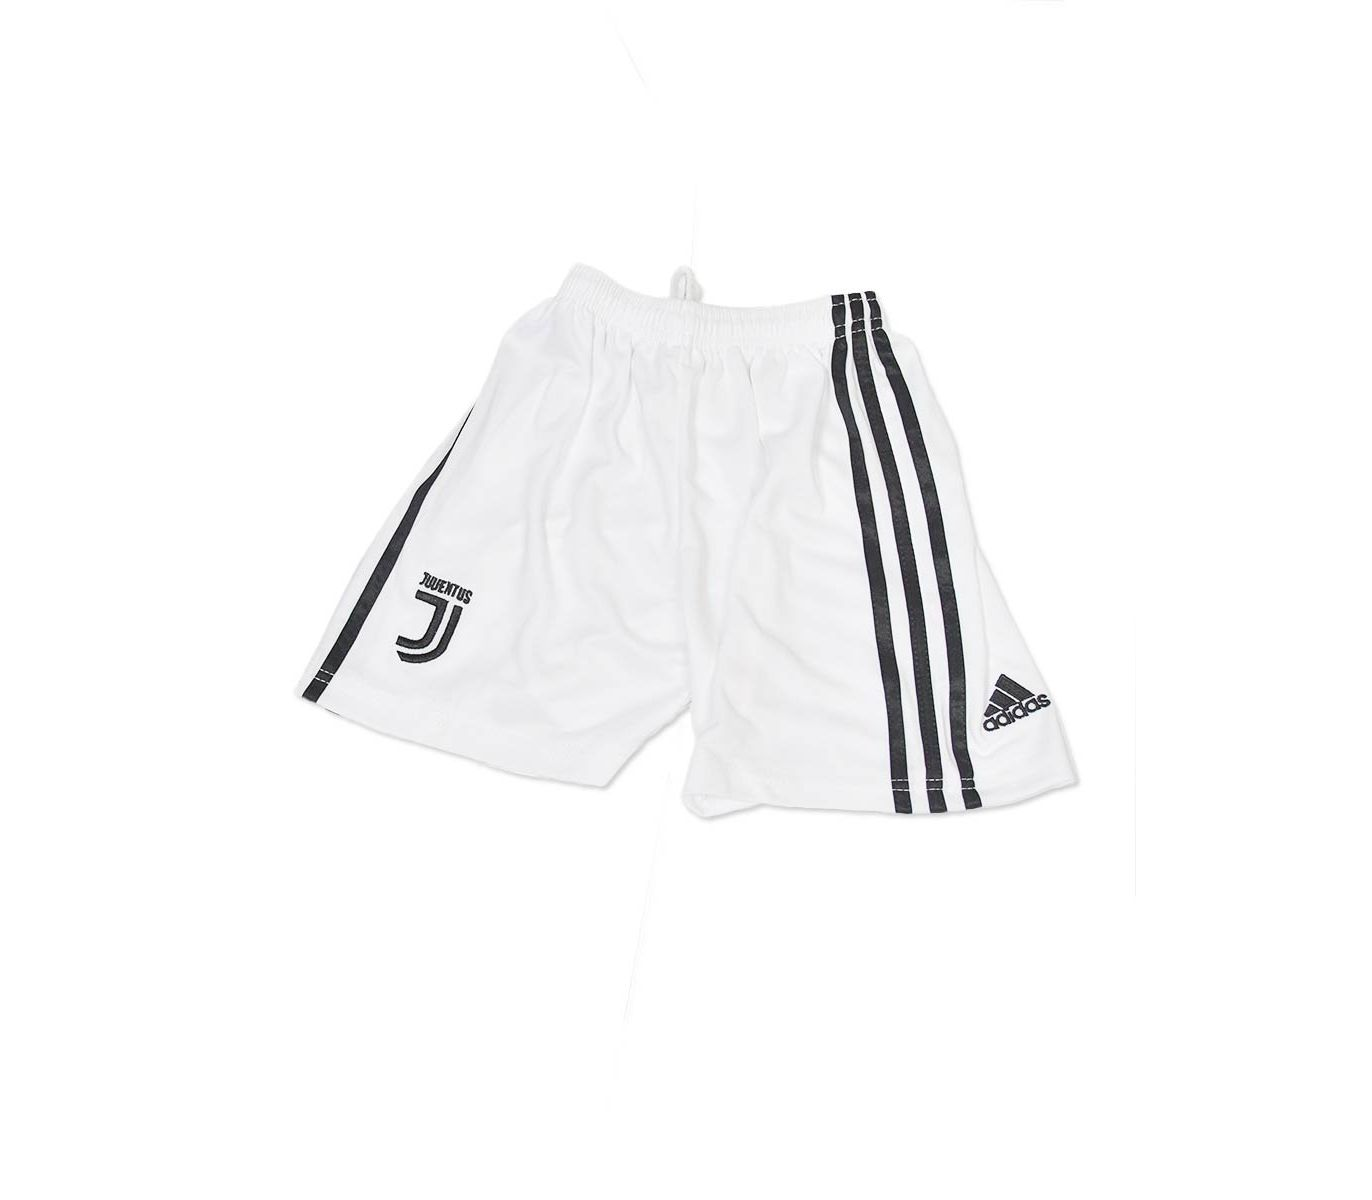 006fee174 ... Store   Kids Sports   Fasilite Juventus - Half Sleeves - Kids Home Kit.  11 of 29. Hover over an image to enlarge